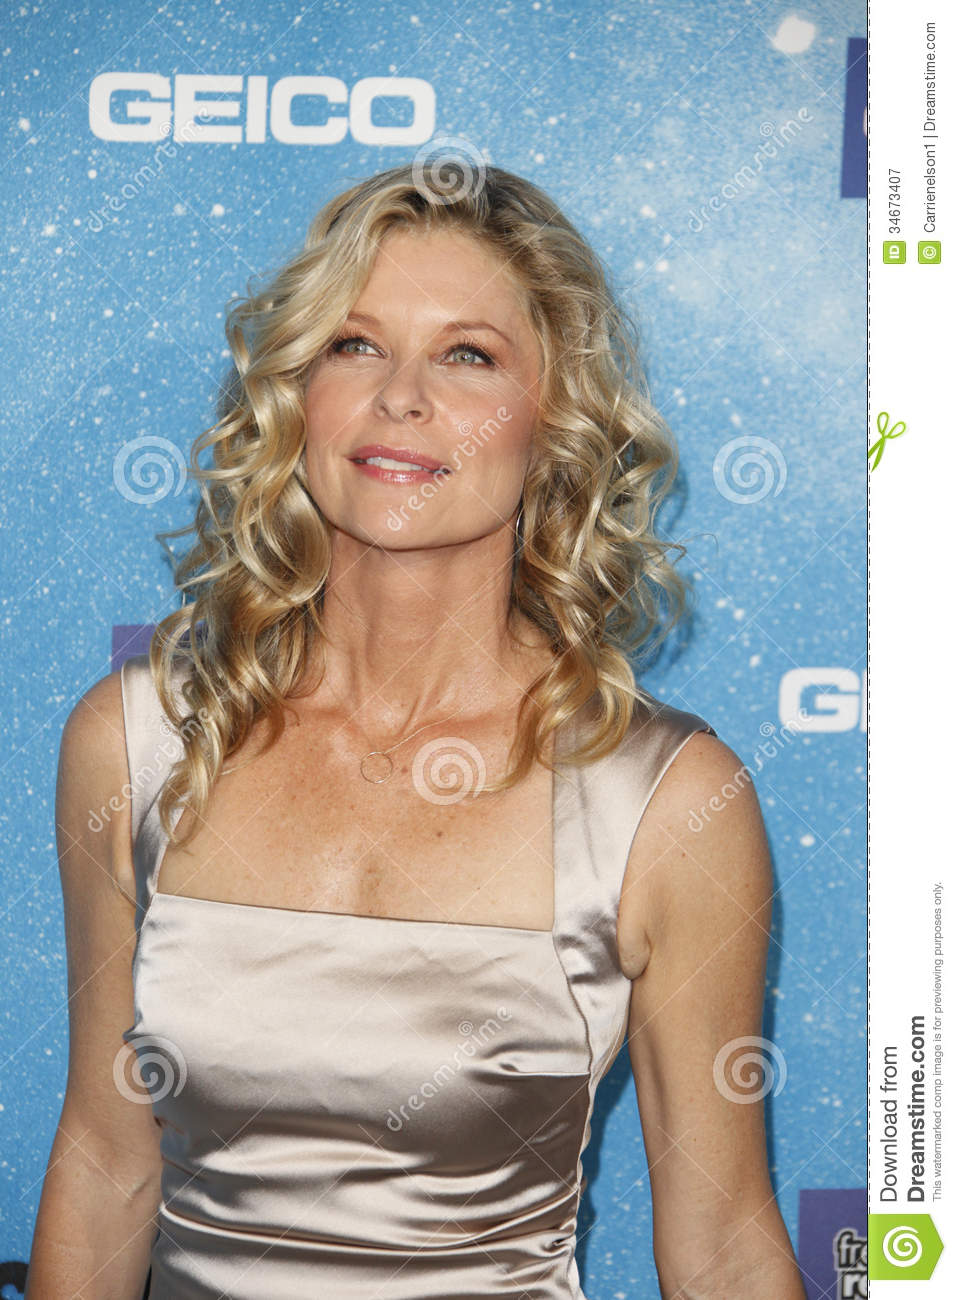 kate vernon youngkate vernon star trek voyager, kate vernon, kate vernon battlestar galactica, kate vernon young, kate vernon soft deceit, kate vernon planetsuzy, kate vernon imdb, kate vernon married, kate vernon dla, kate vernon husband, kate vernon star trek, kate vernon malcolm x, kate vernon hill dickinson